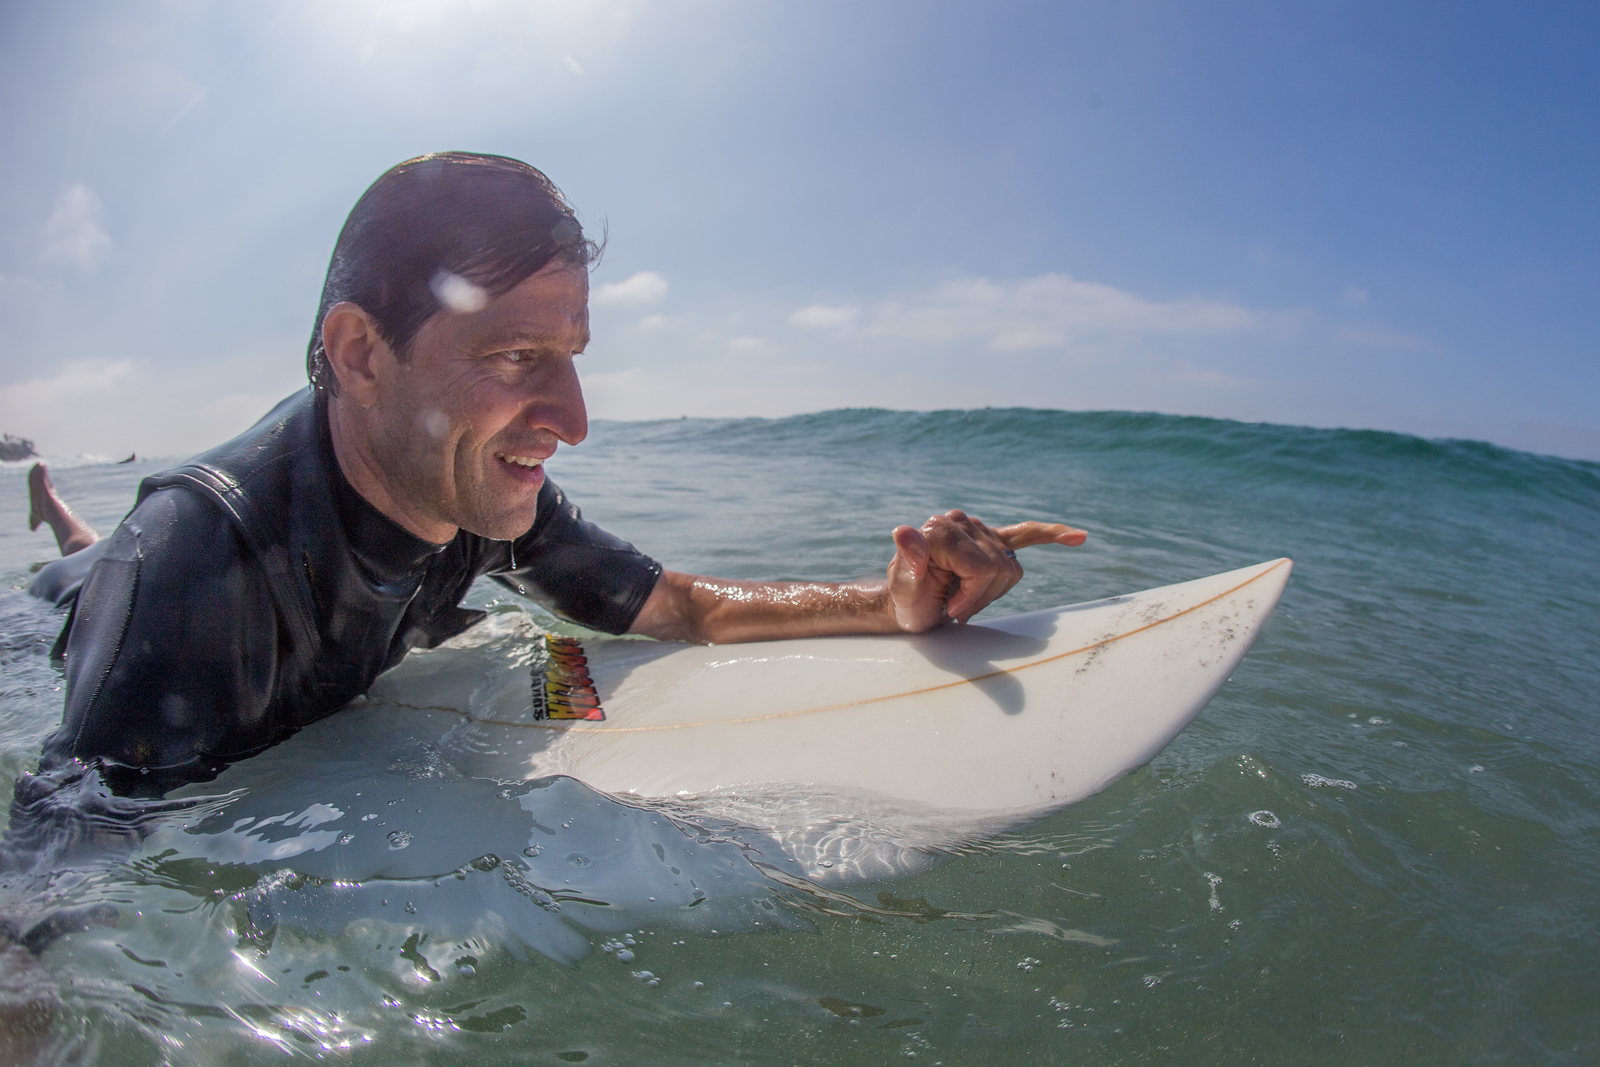 surfing at south ponto beach brad edward's memorial paddle out